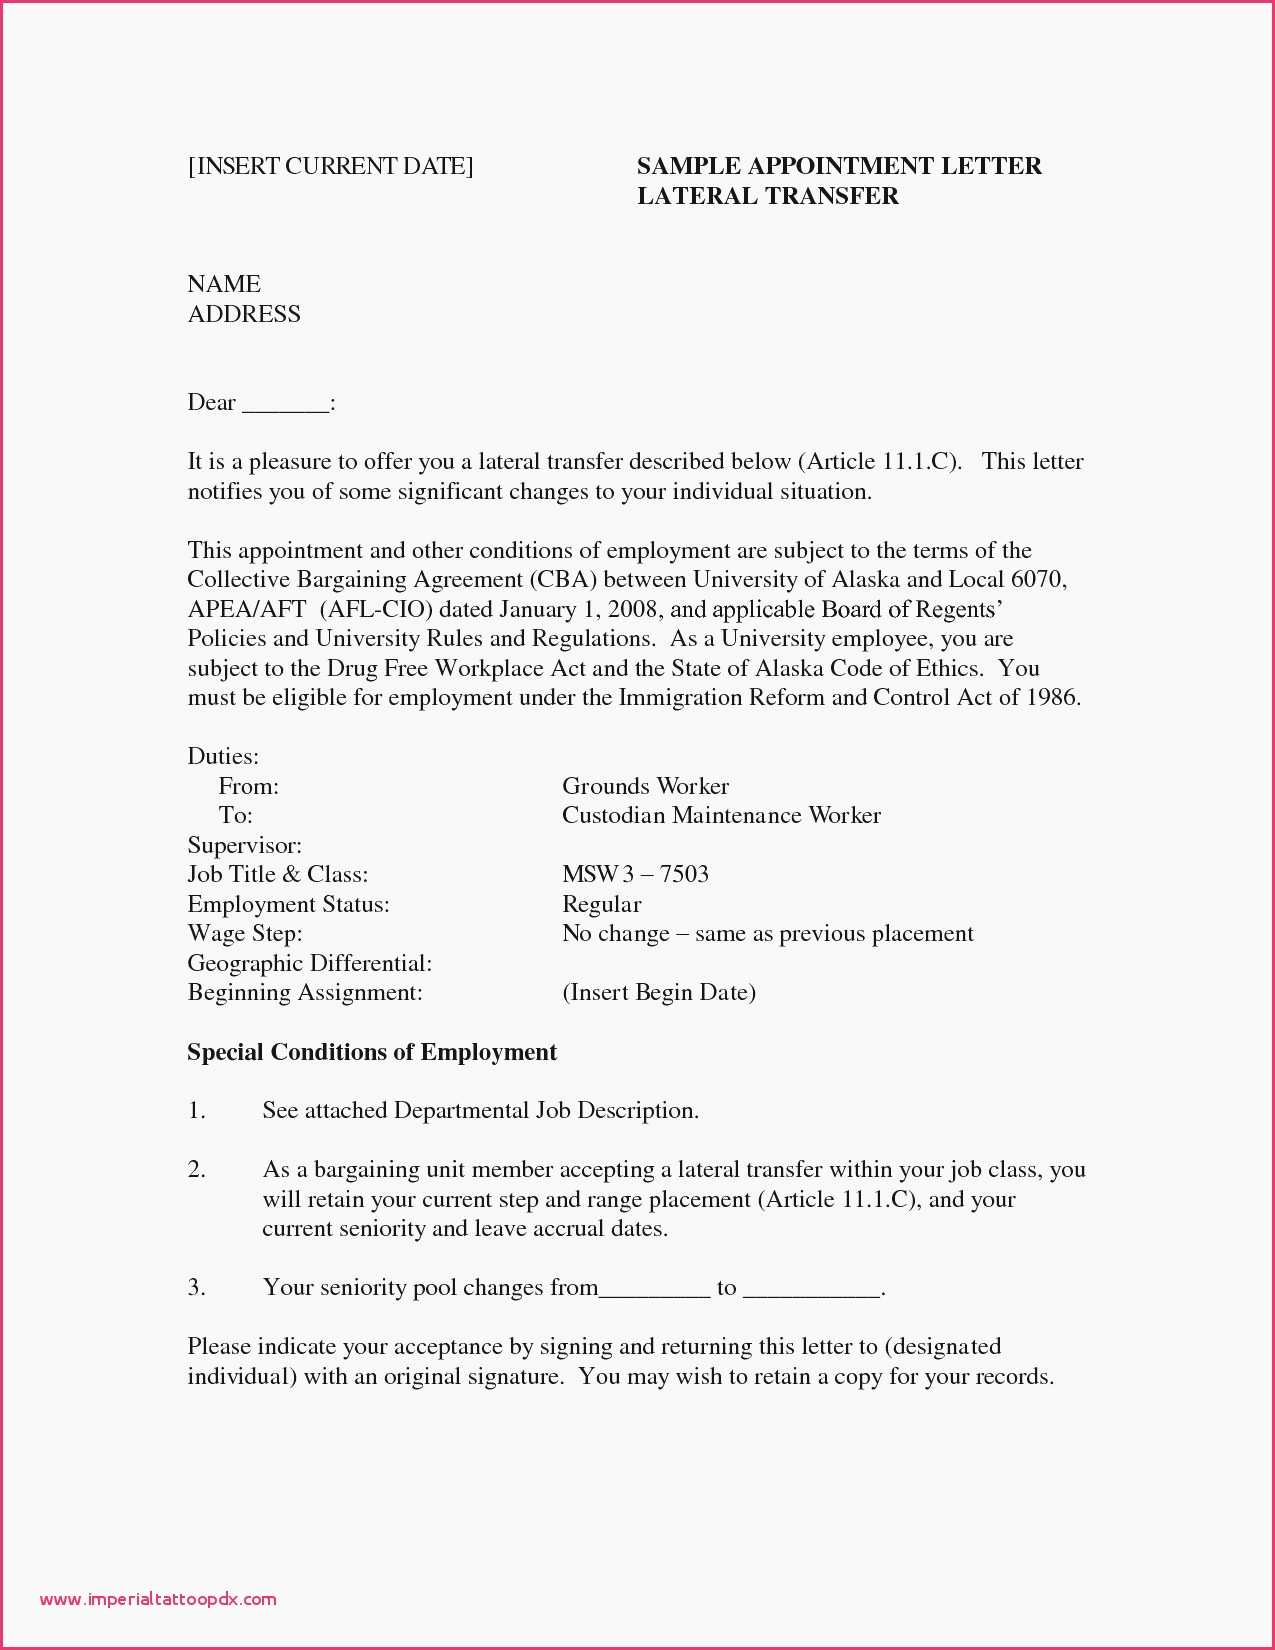 Top Resume Fonts - Free Resume for Military What is the format A Resume Free